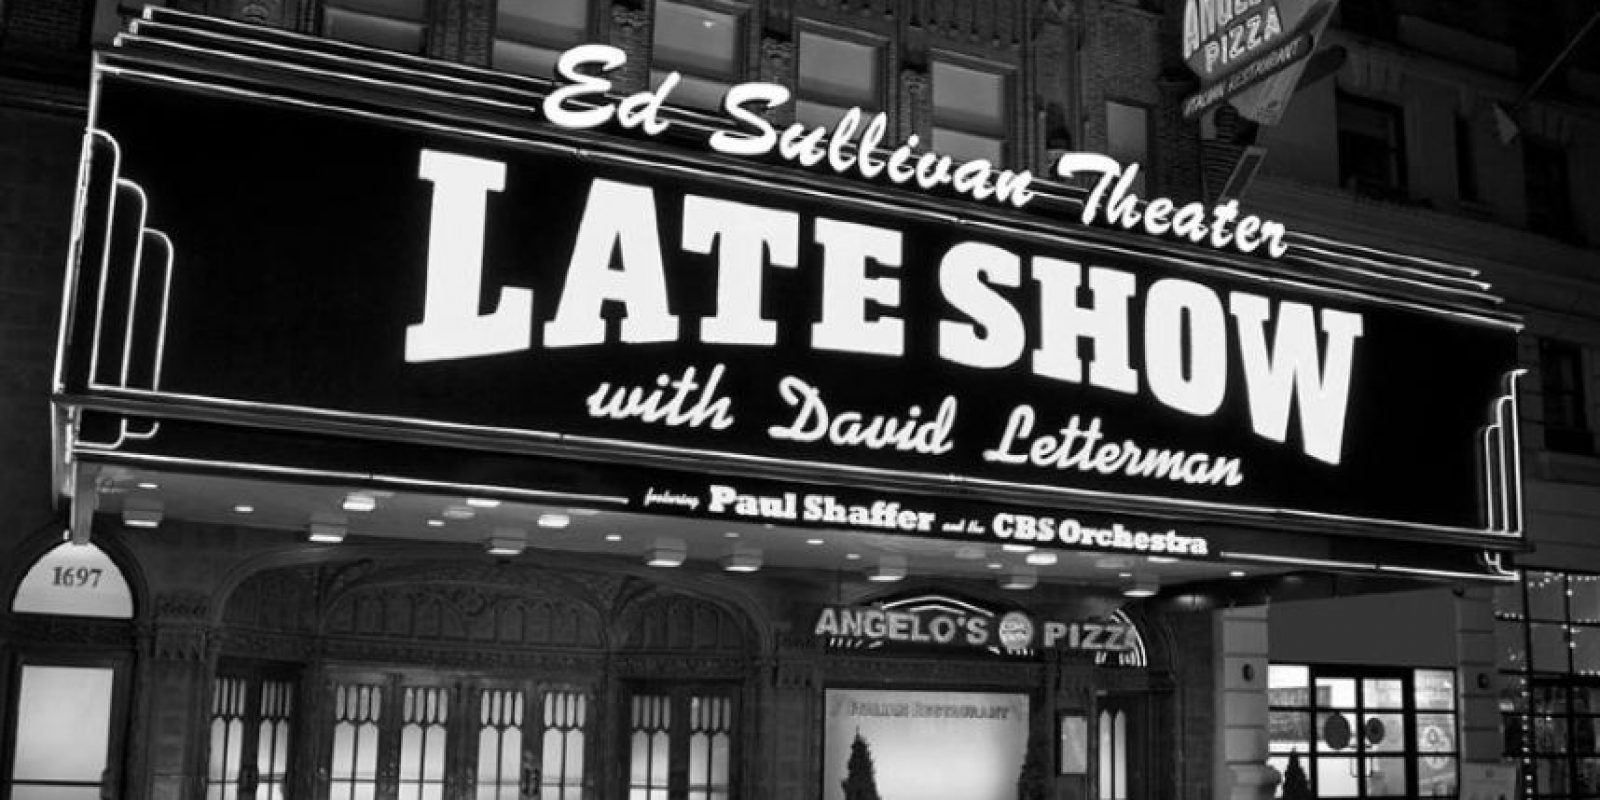 Foto: Facebook/The Late Show